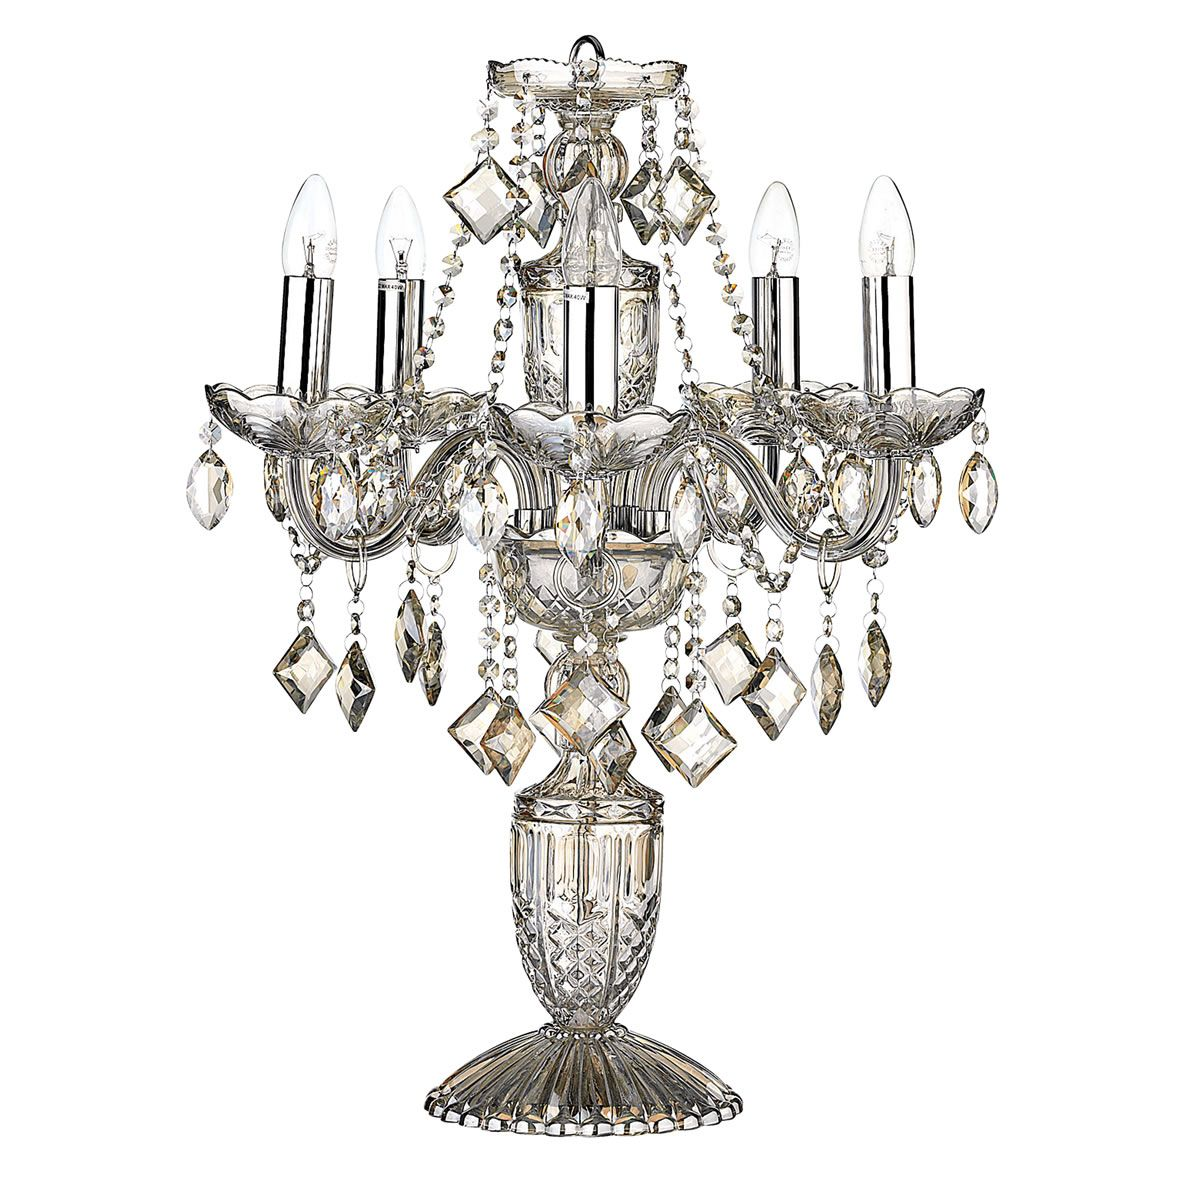 Remarkable Chandelier Table Lamp Australia Contemporary ...